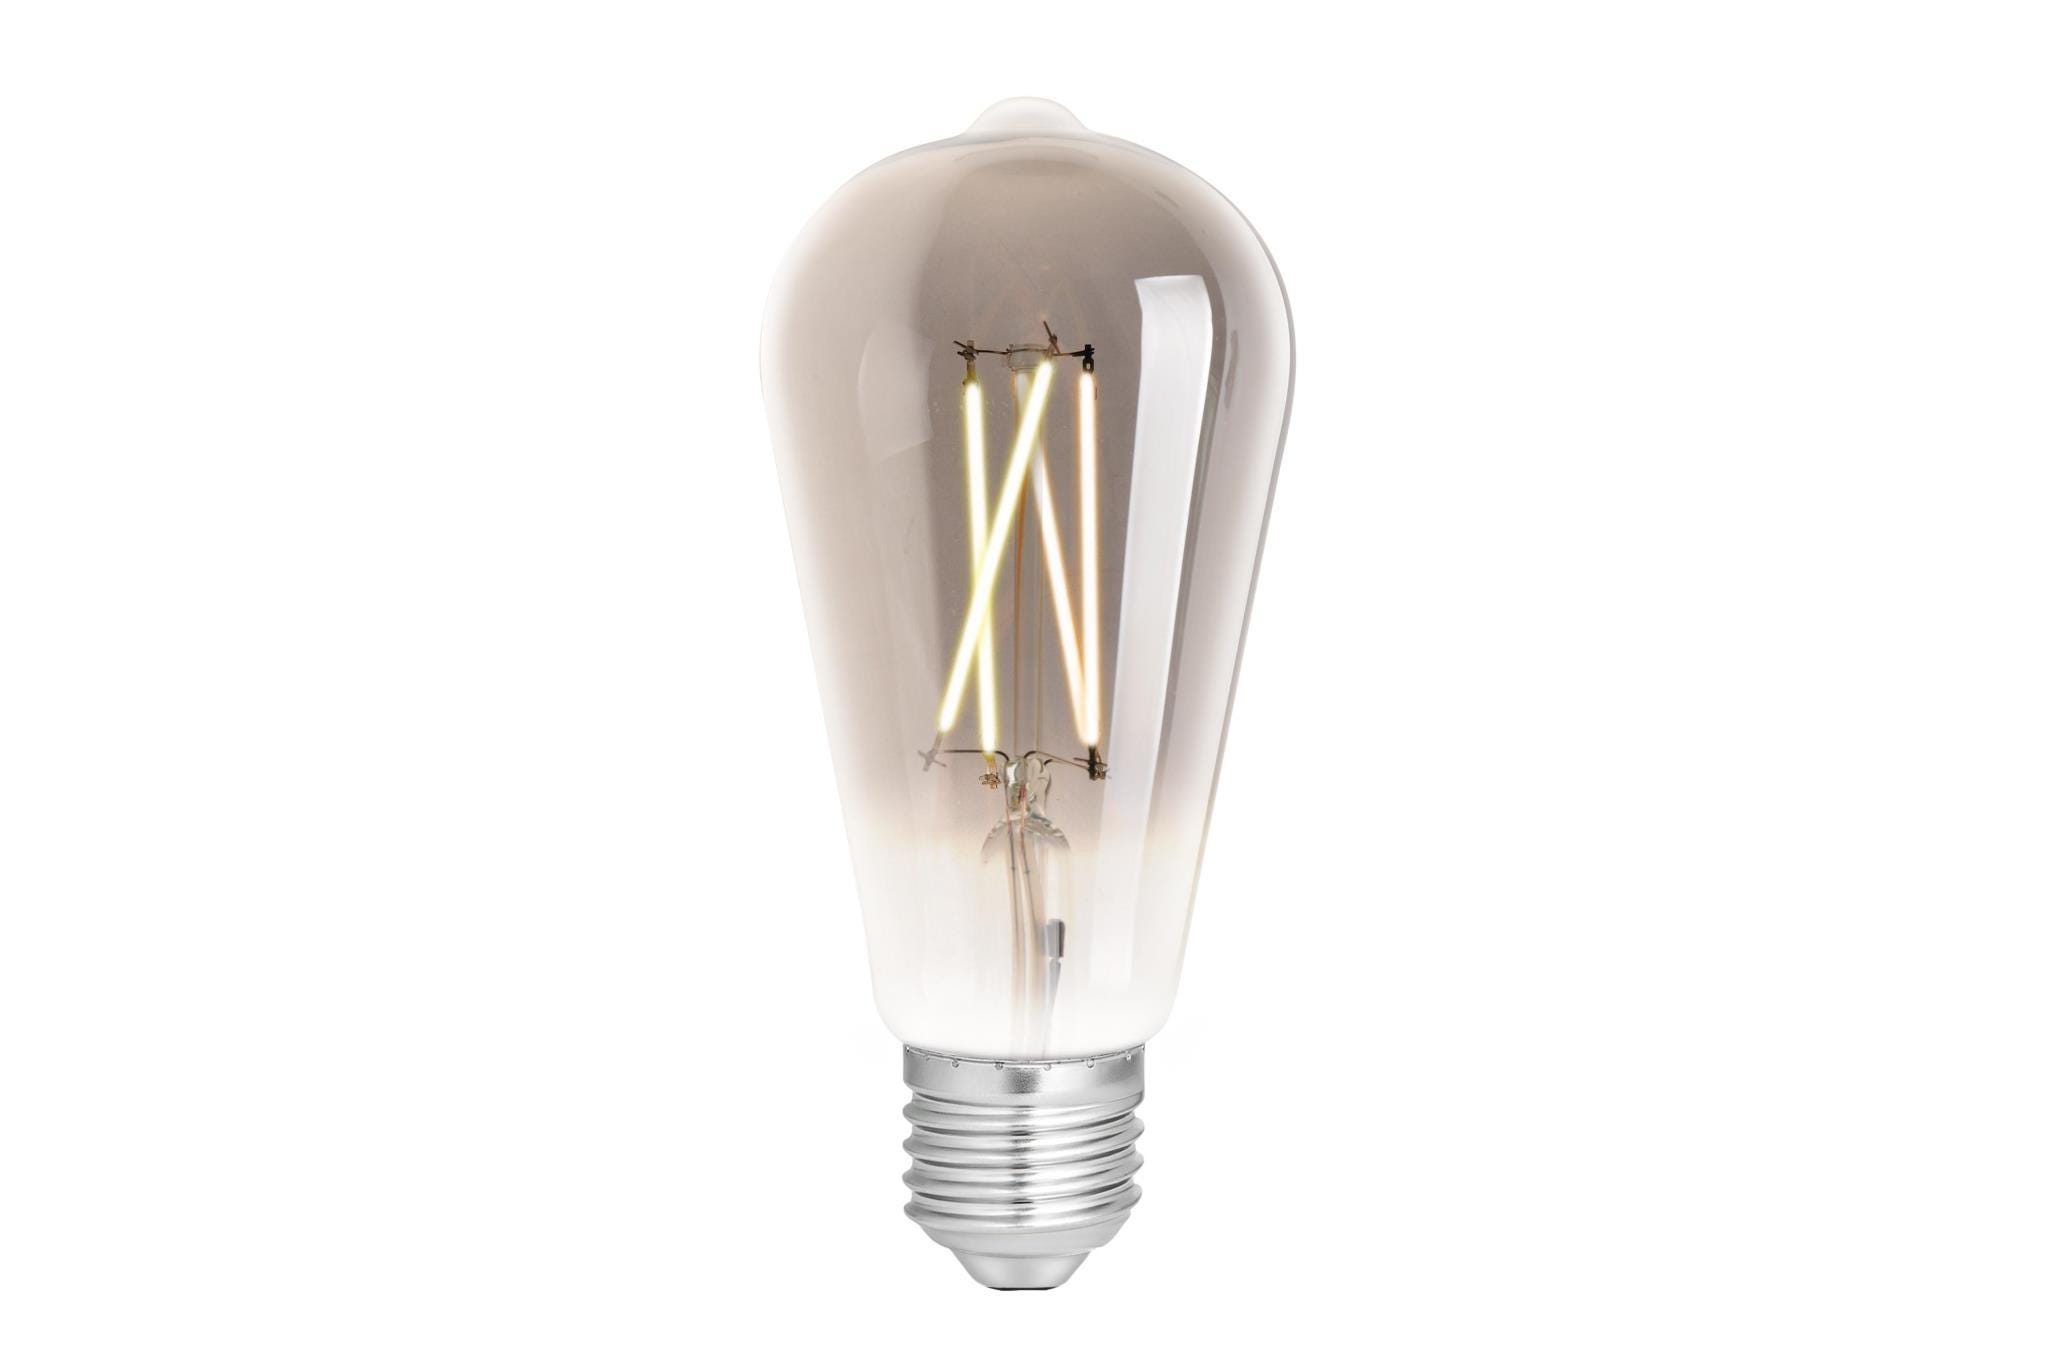 4lite WiZ Connected ST64 Edison Filament LED Smart Bulb Smokey White Dimmable WiFi  - E27 Screw